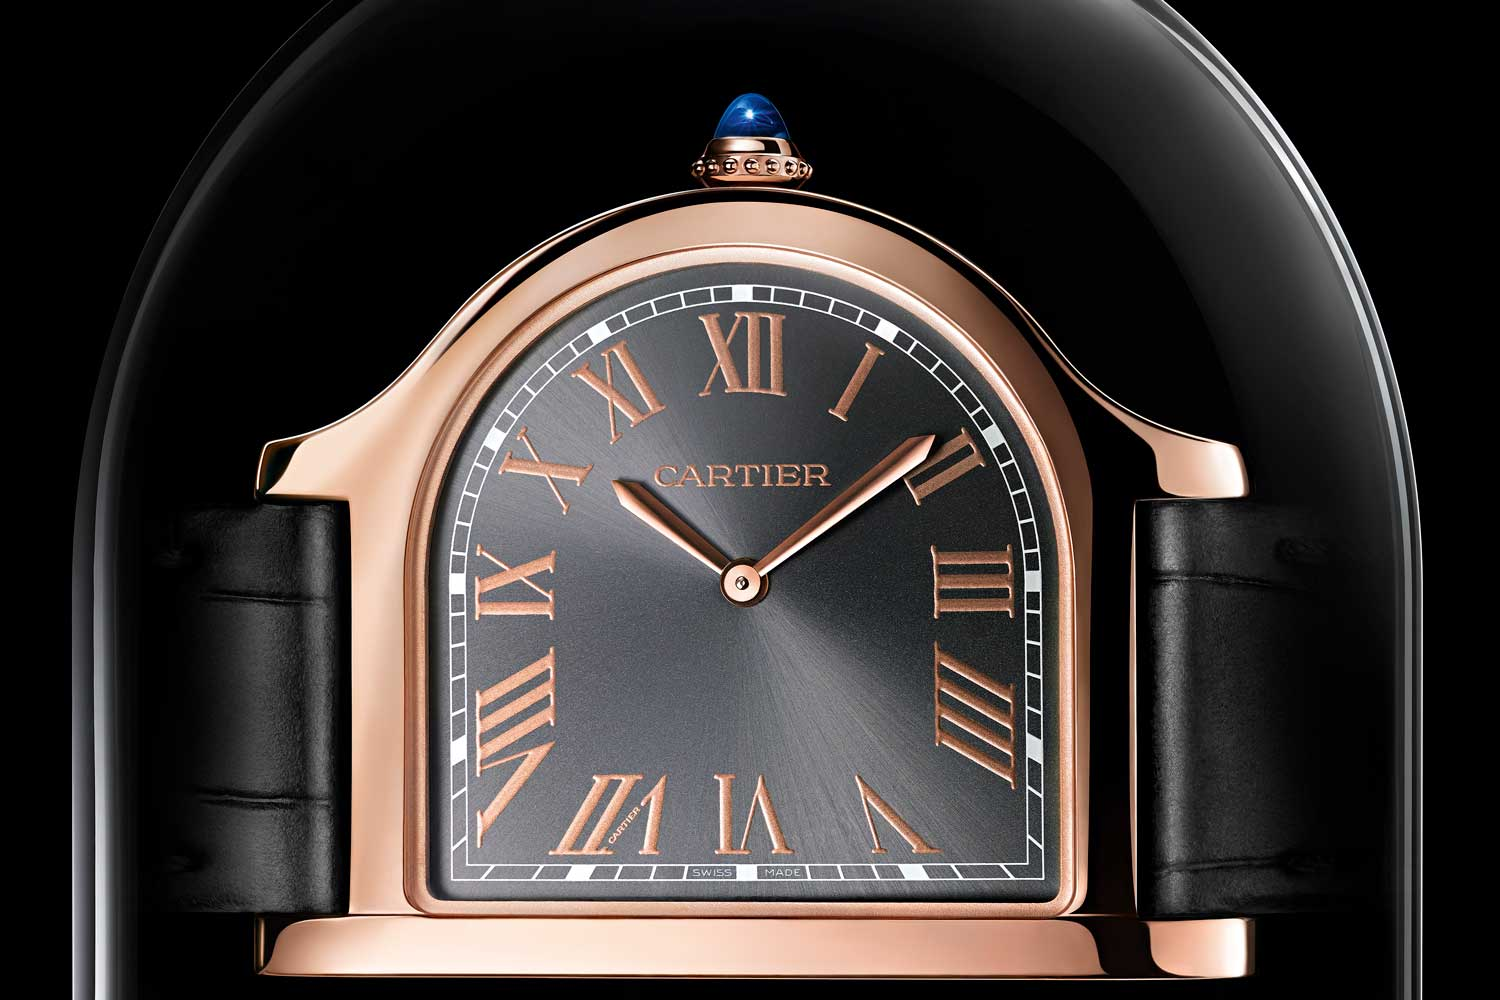 The new Cloche de Cartier in 18k pink gold is limited to 100 pieces.